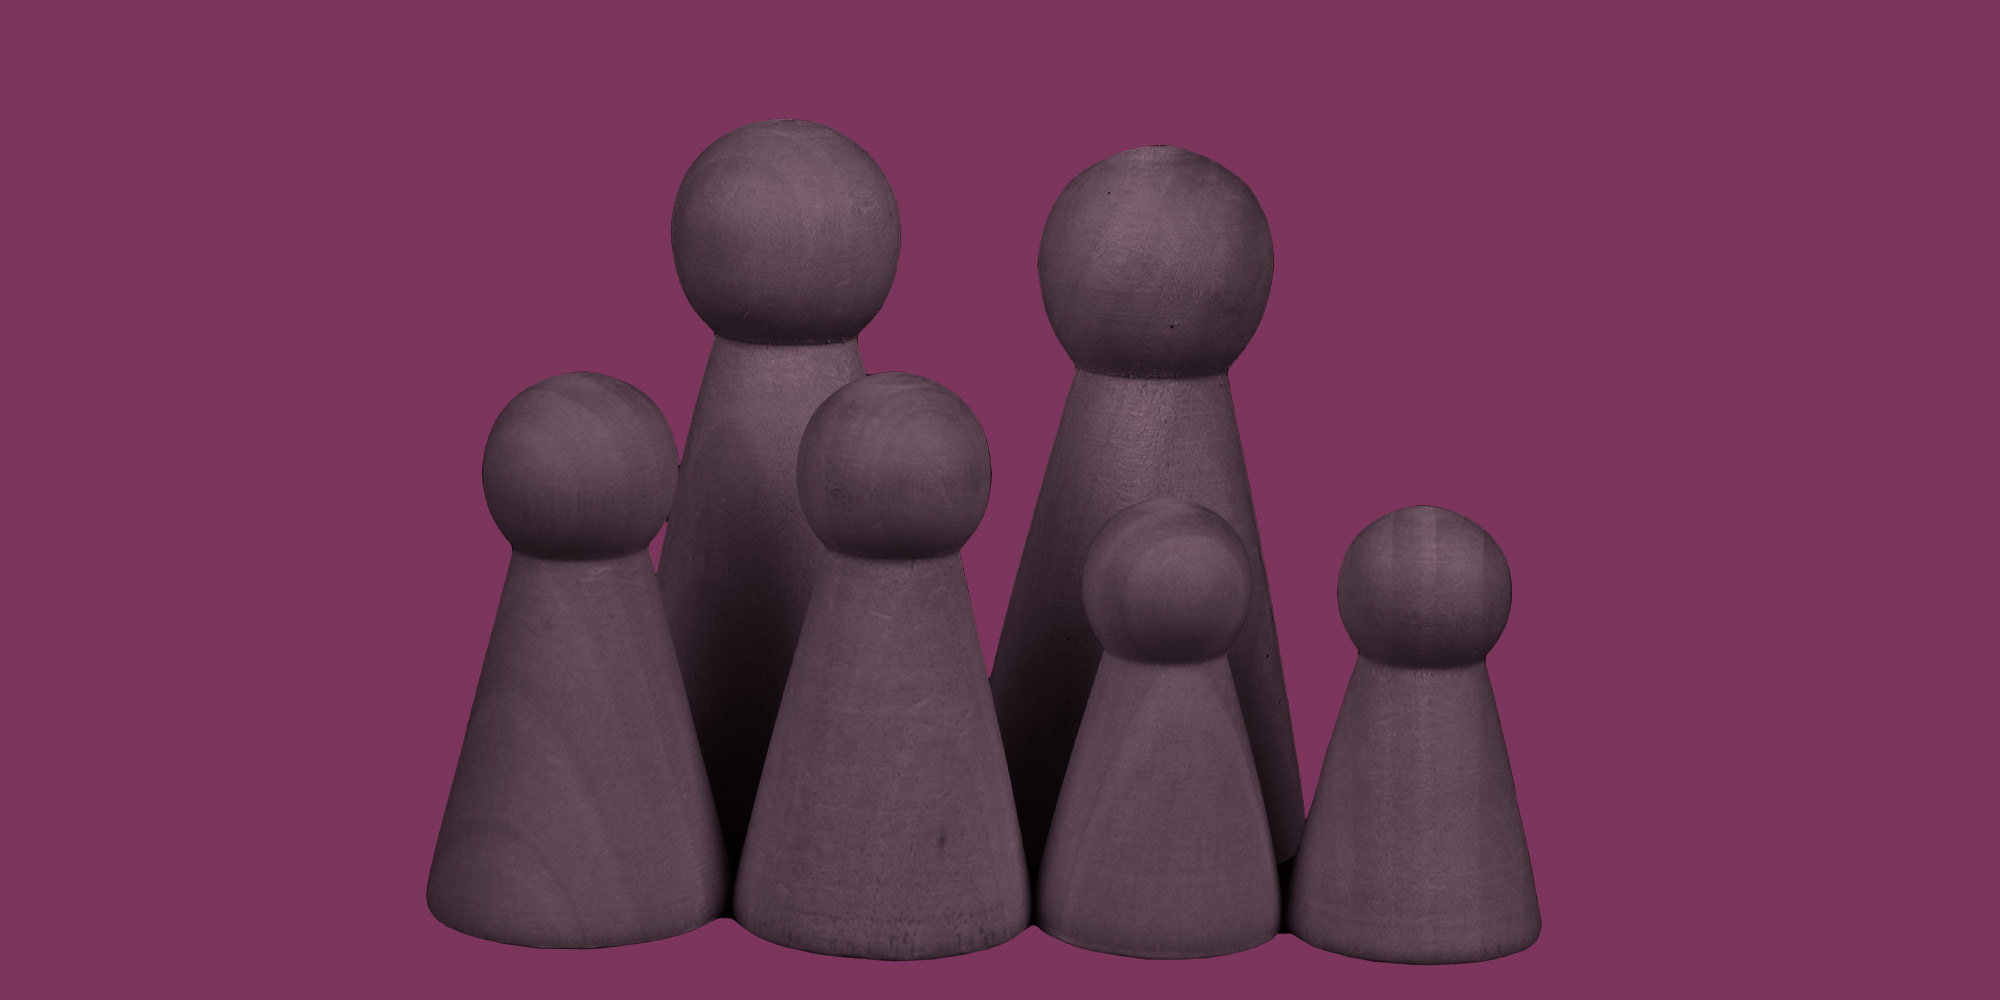 Wooden peg doll family, What do you do when your family wants you to get sober?